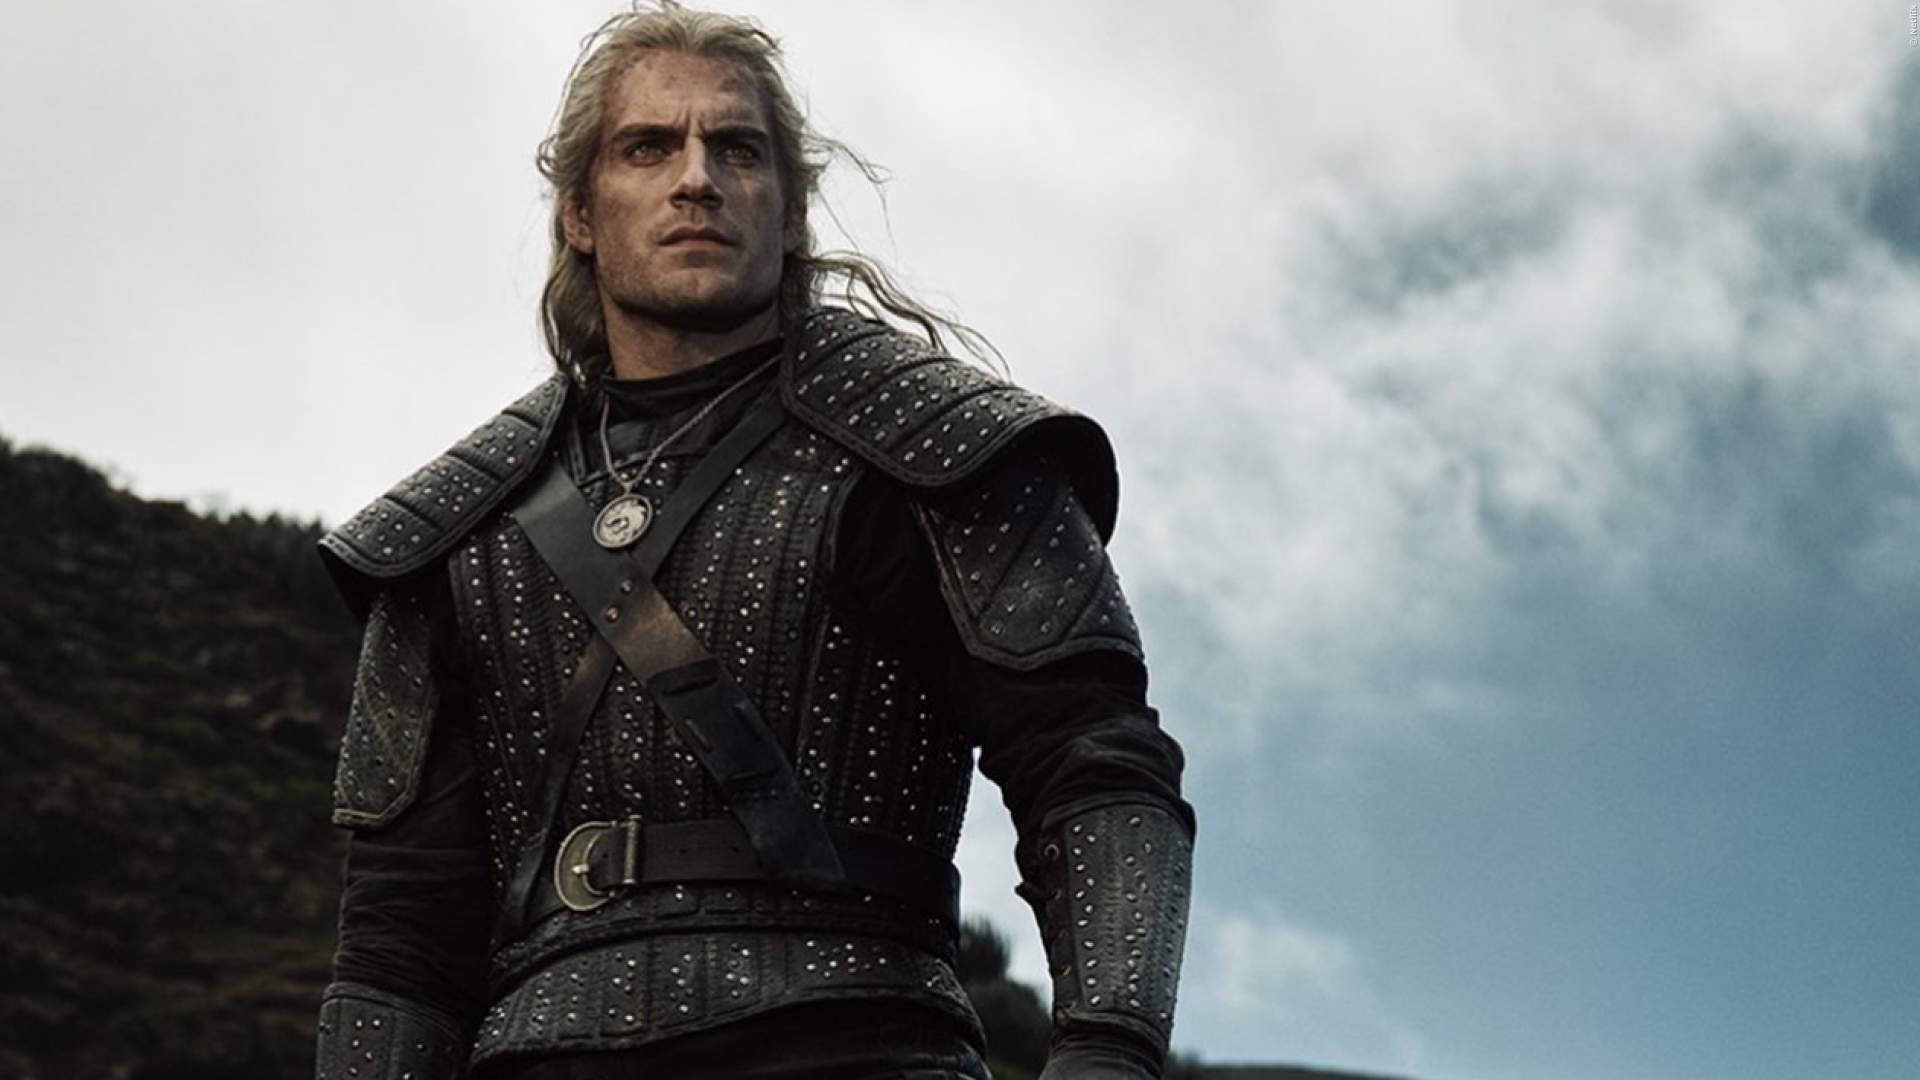 The Witcher Staffel 1 Bild 1